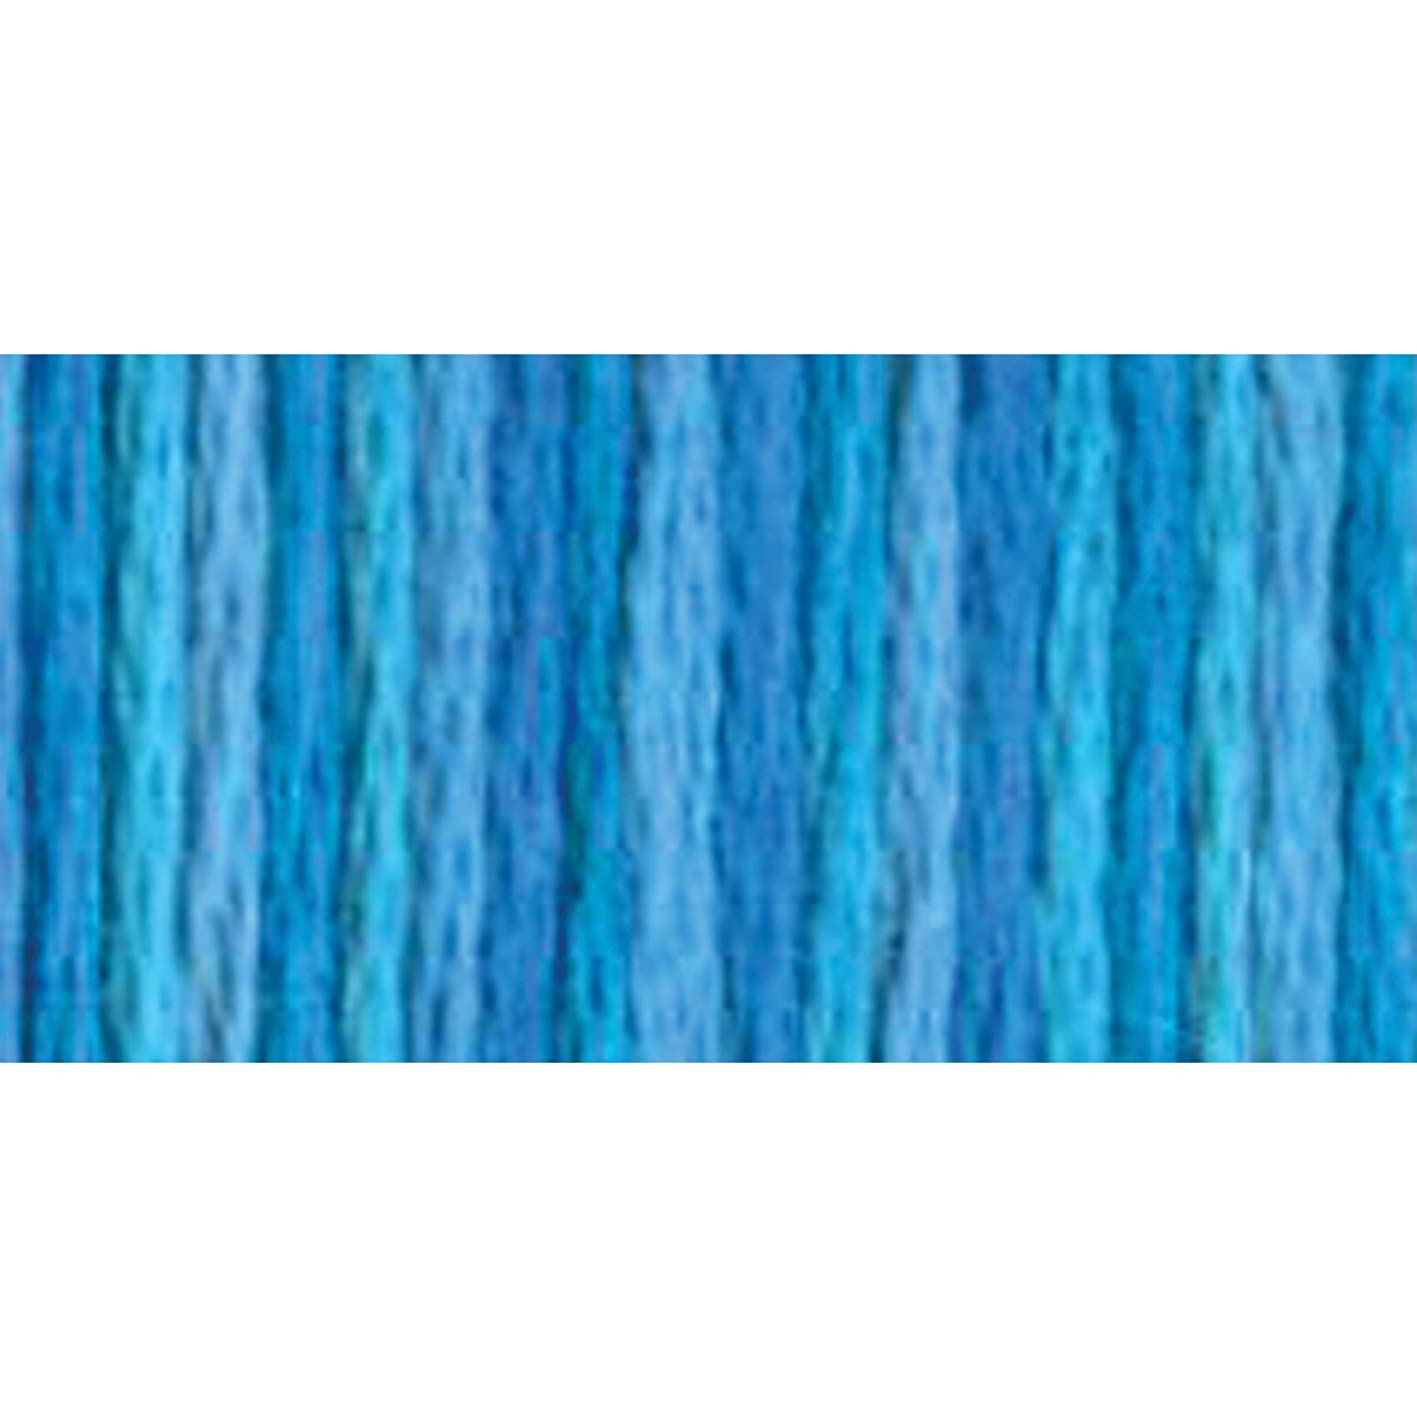 DMC 417F-4022 Color Variations Six Strand Embroidery Floss, 8.7-Yard, Mediterranean Sea wxfaujoyecj924